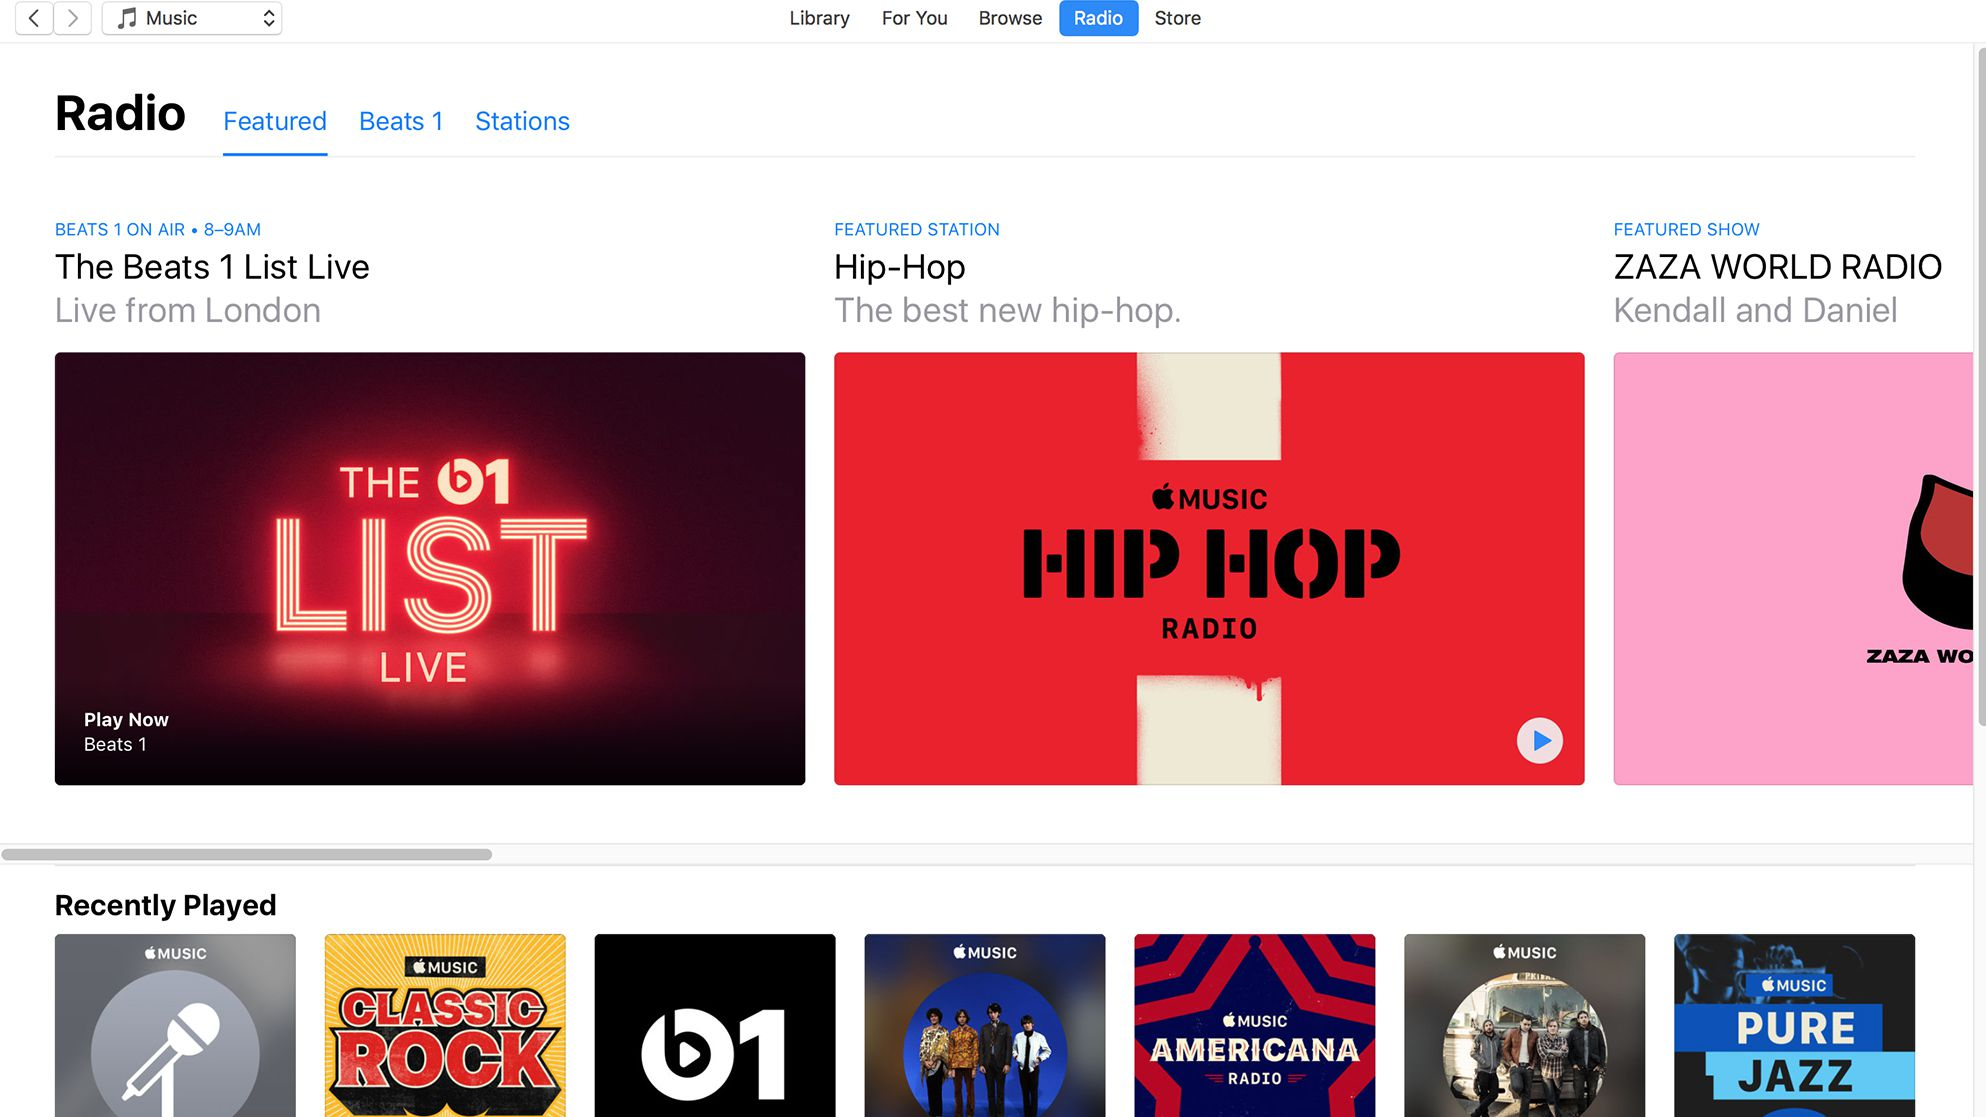 How to Add Radio Stations to iTunes